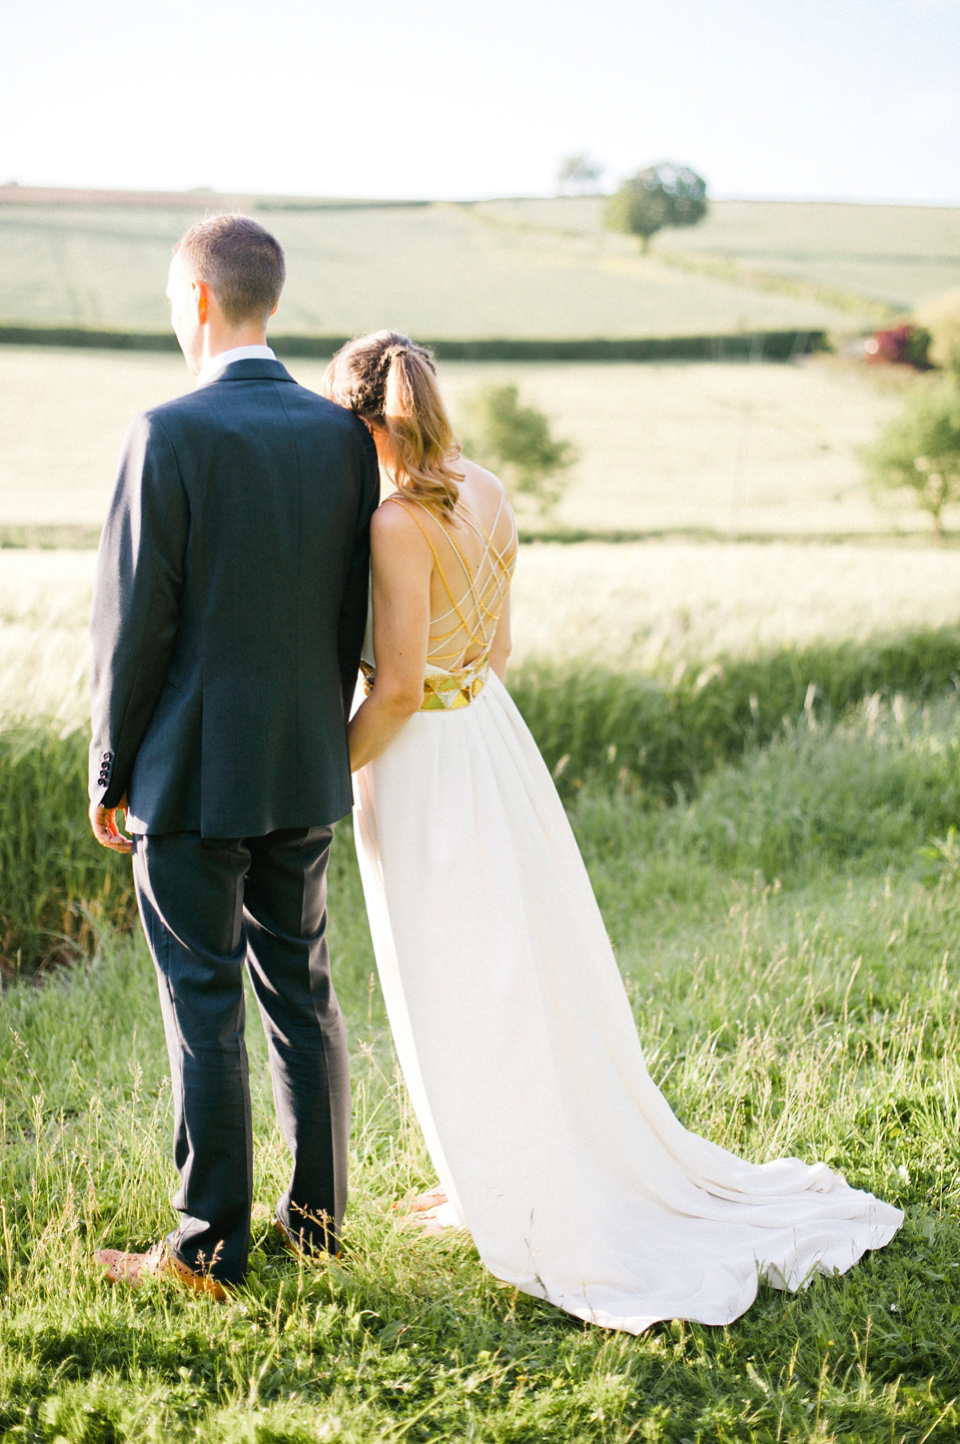 a modern A line wedding dress with an embellished geometric sash and multiple criss cross gold and white straps